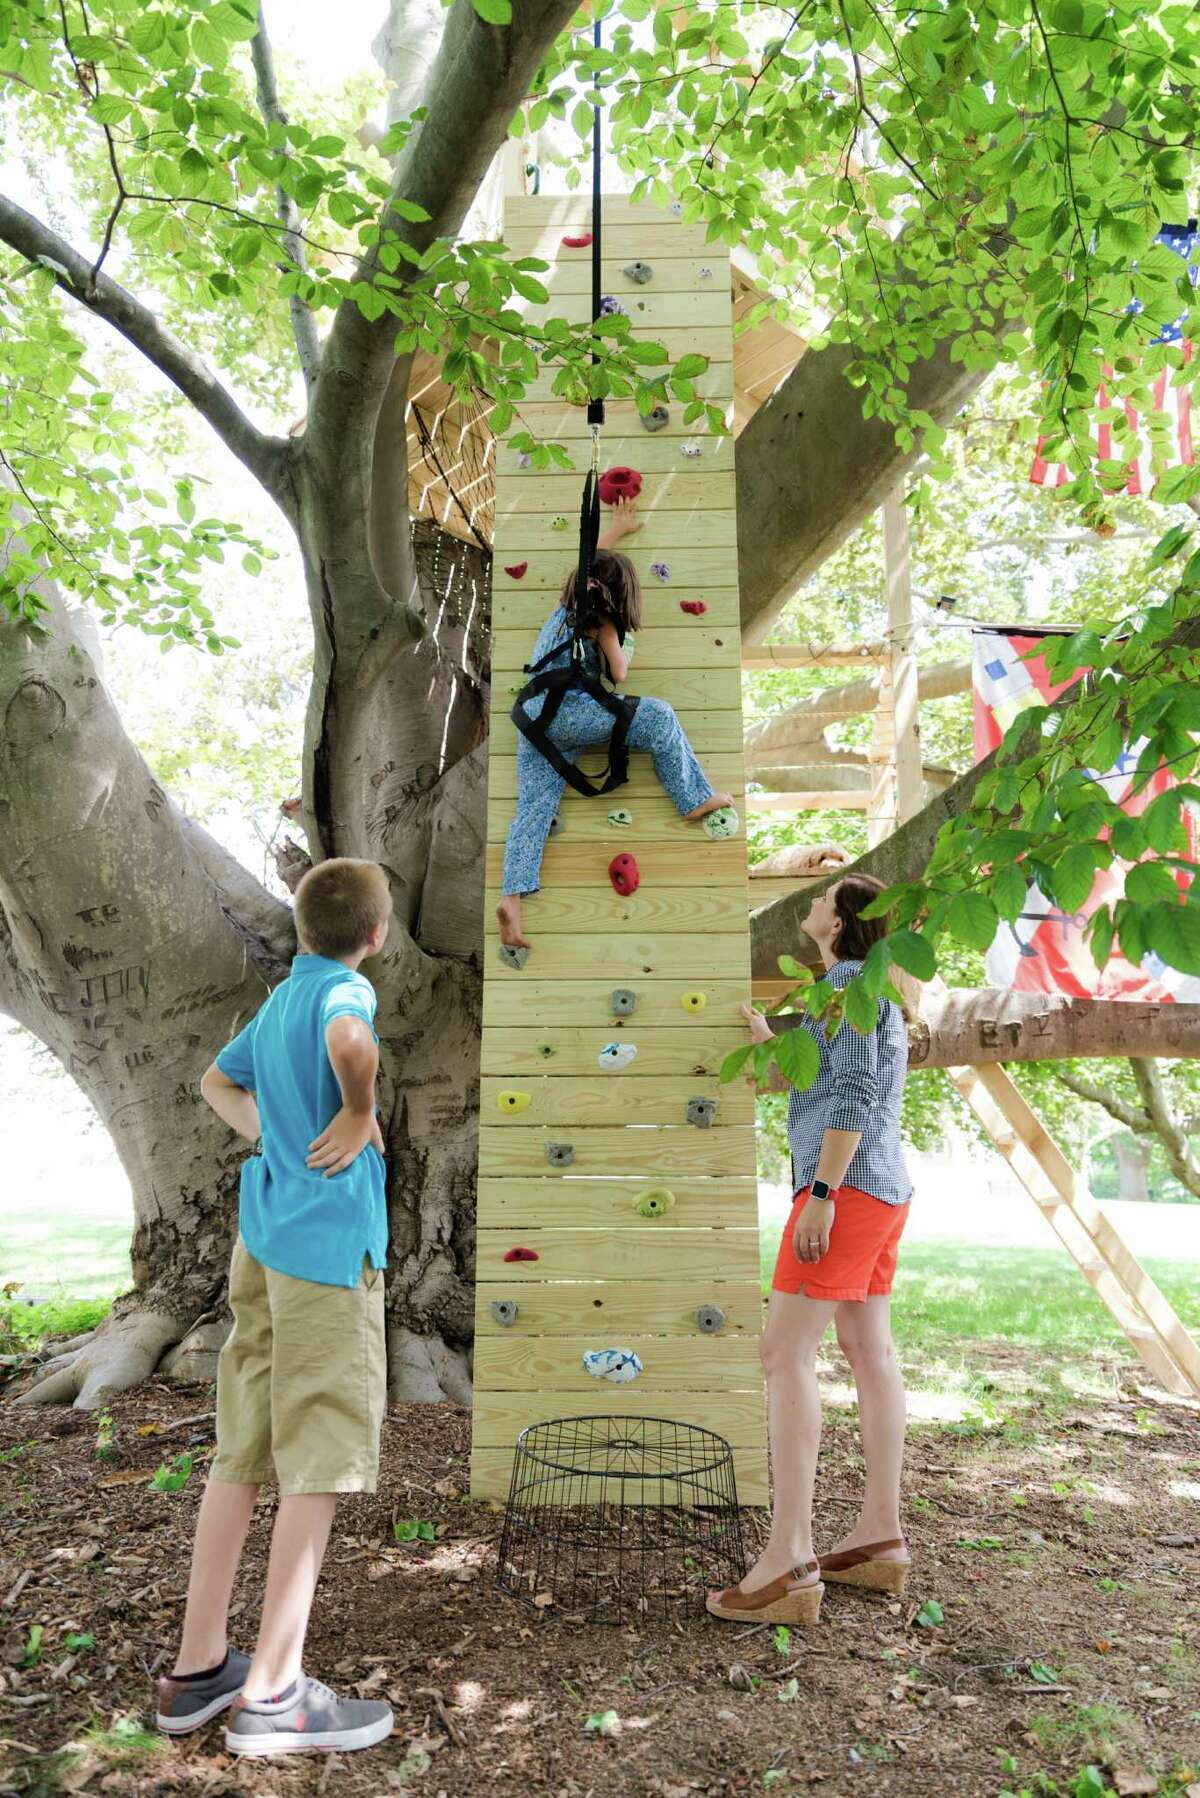 Rebecca Sikora safely ascends a climbing wall, an alternate way to get to the treehouse's top deck, as her brother James and their mother Ashley watch.